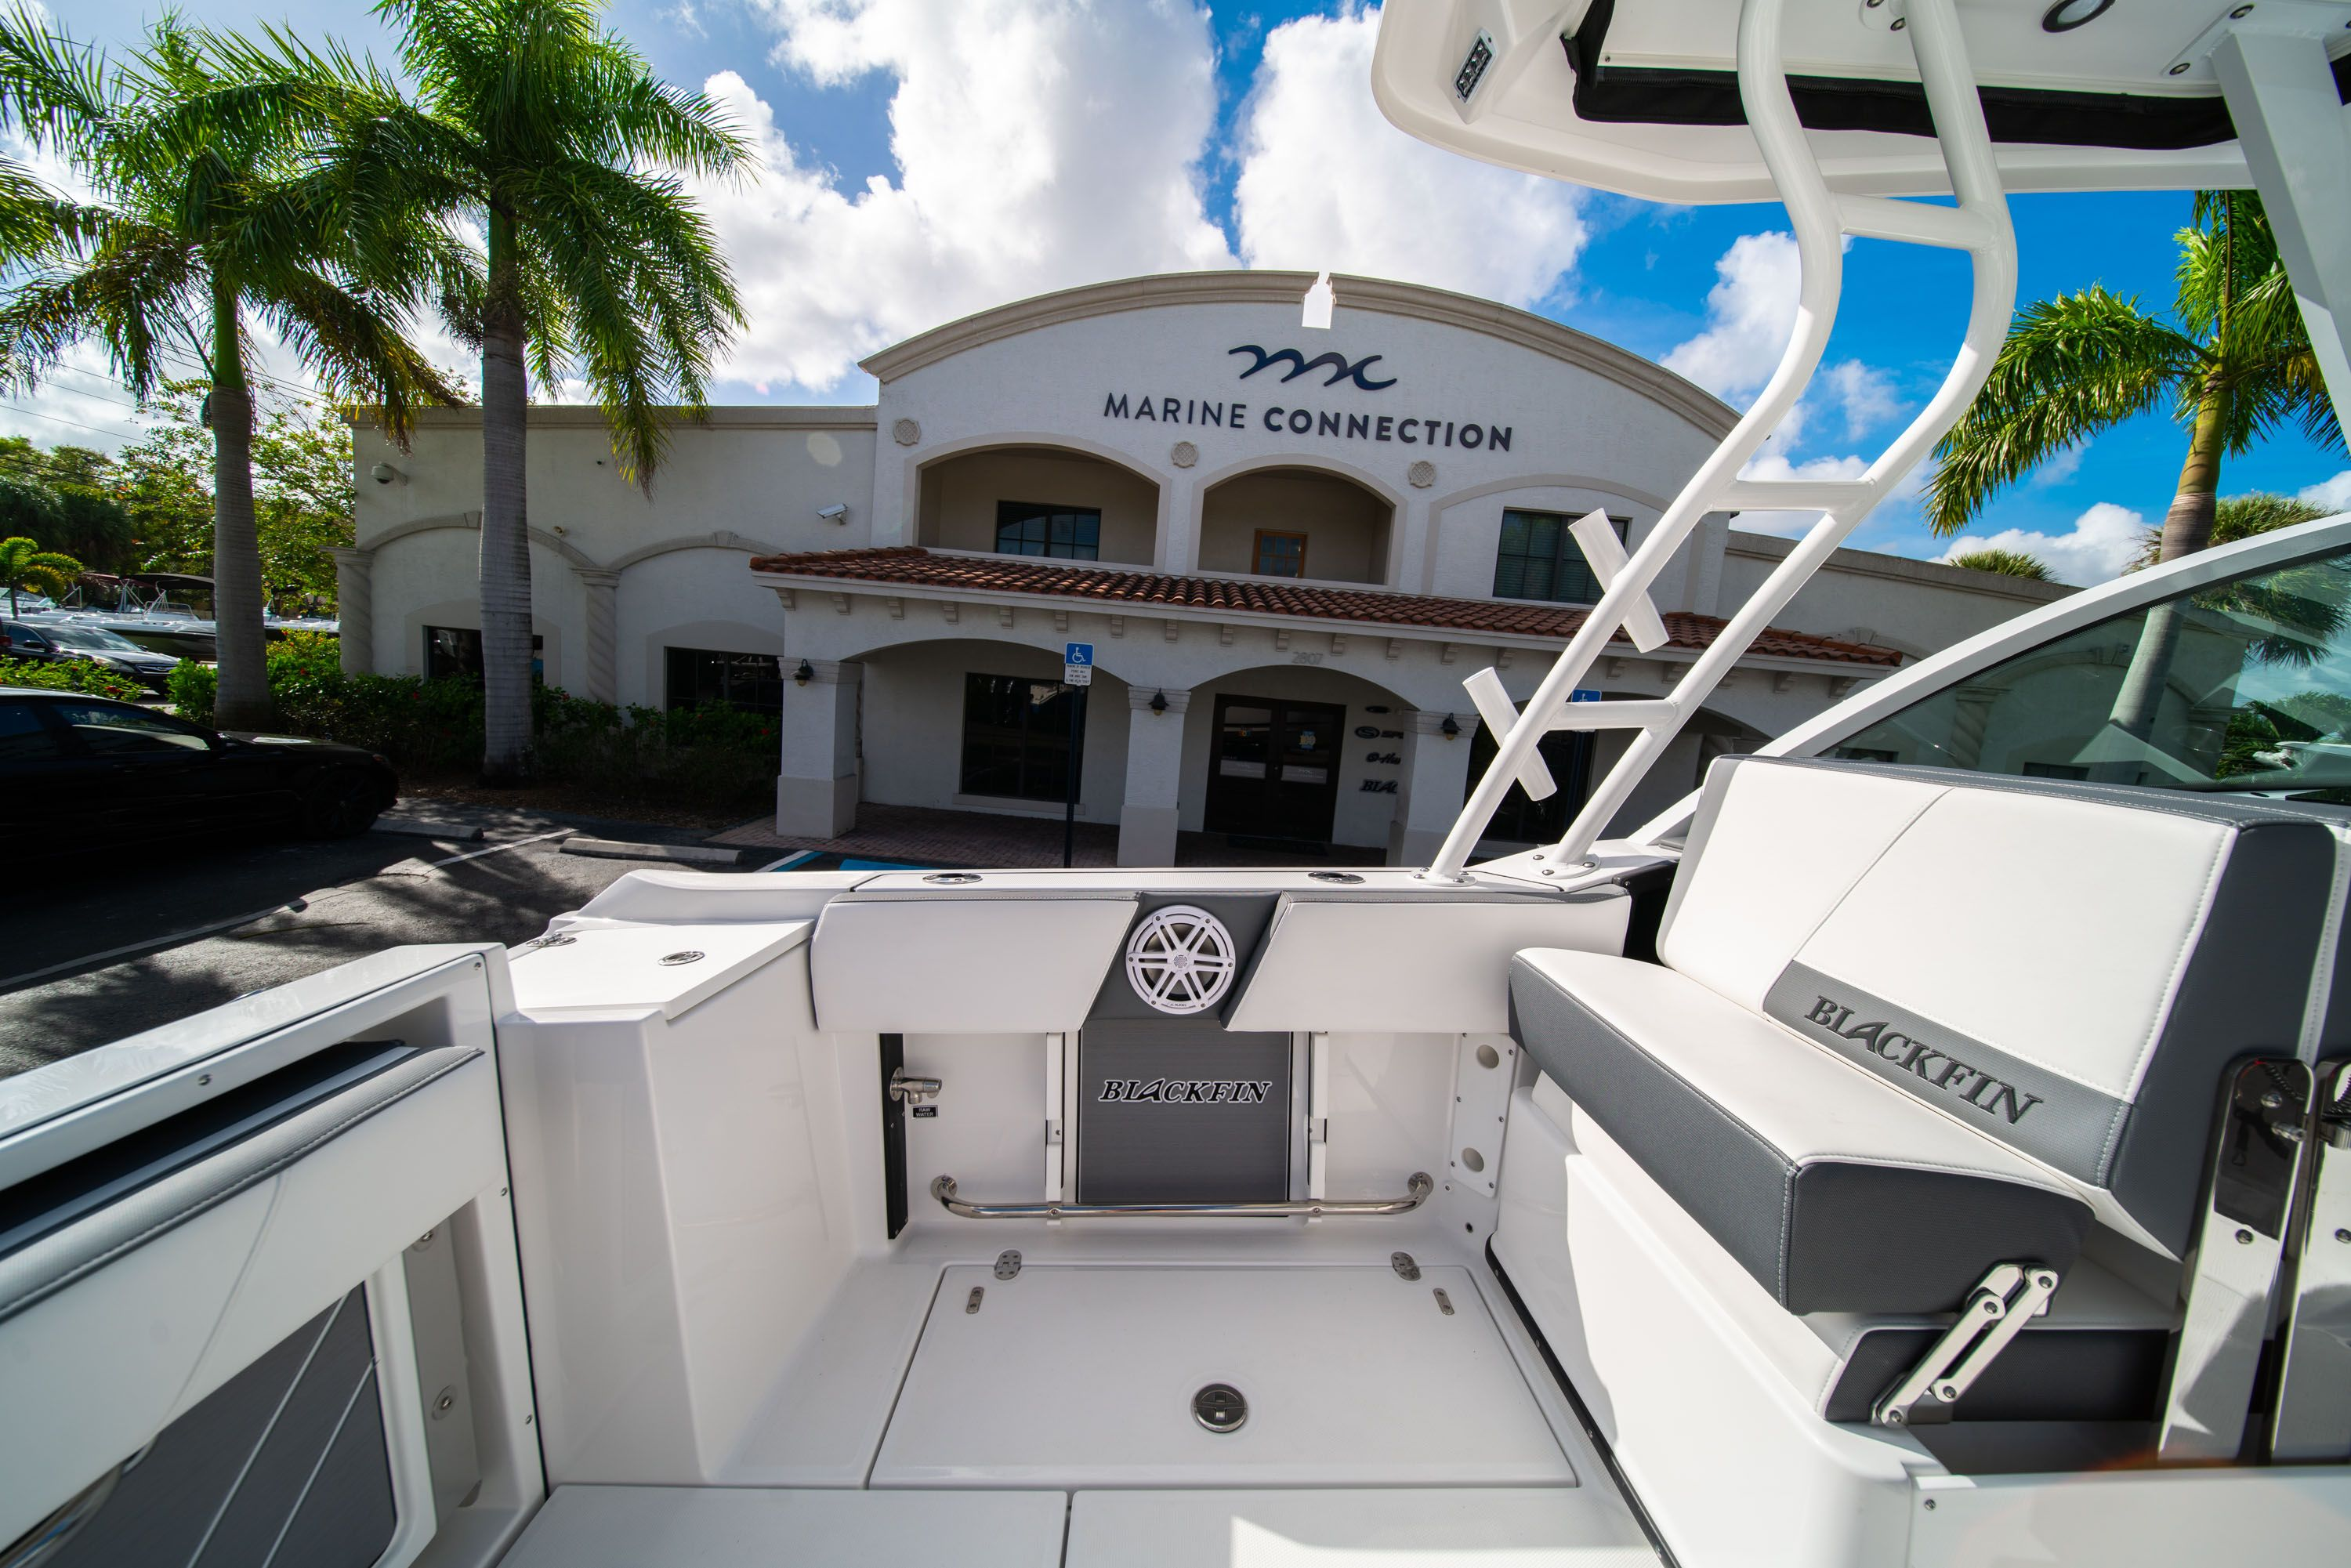 Thumbnail 21 for New 2020 Blackfin 242DC Dual Console boat for sale in West Palm Beach, FL